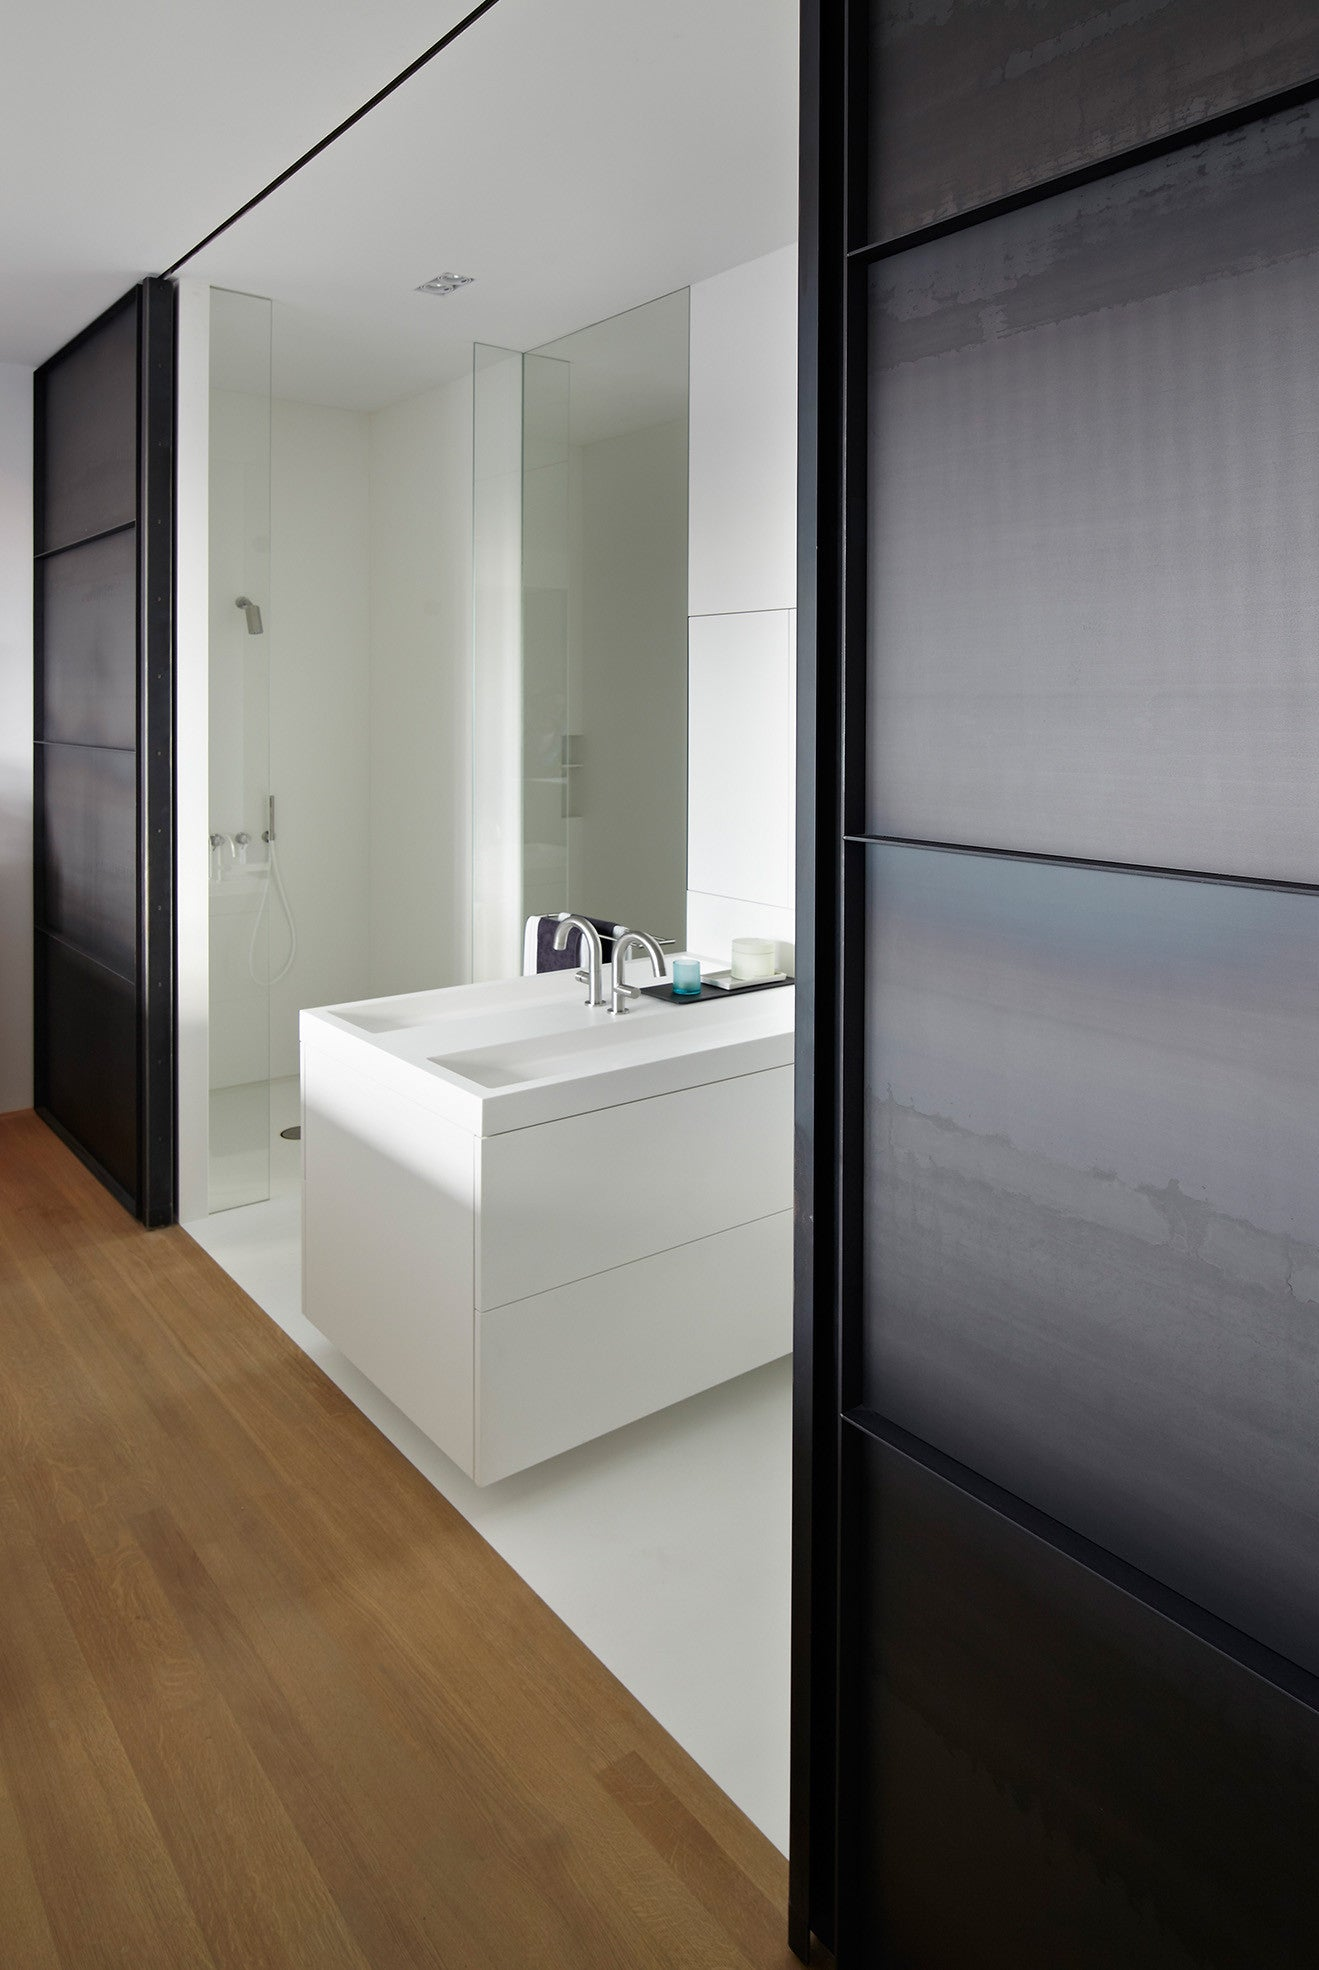 Large industrial doors slide back to reveal the shower and washroom